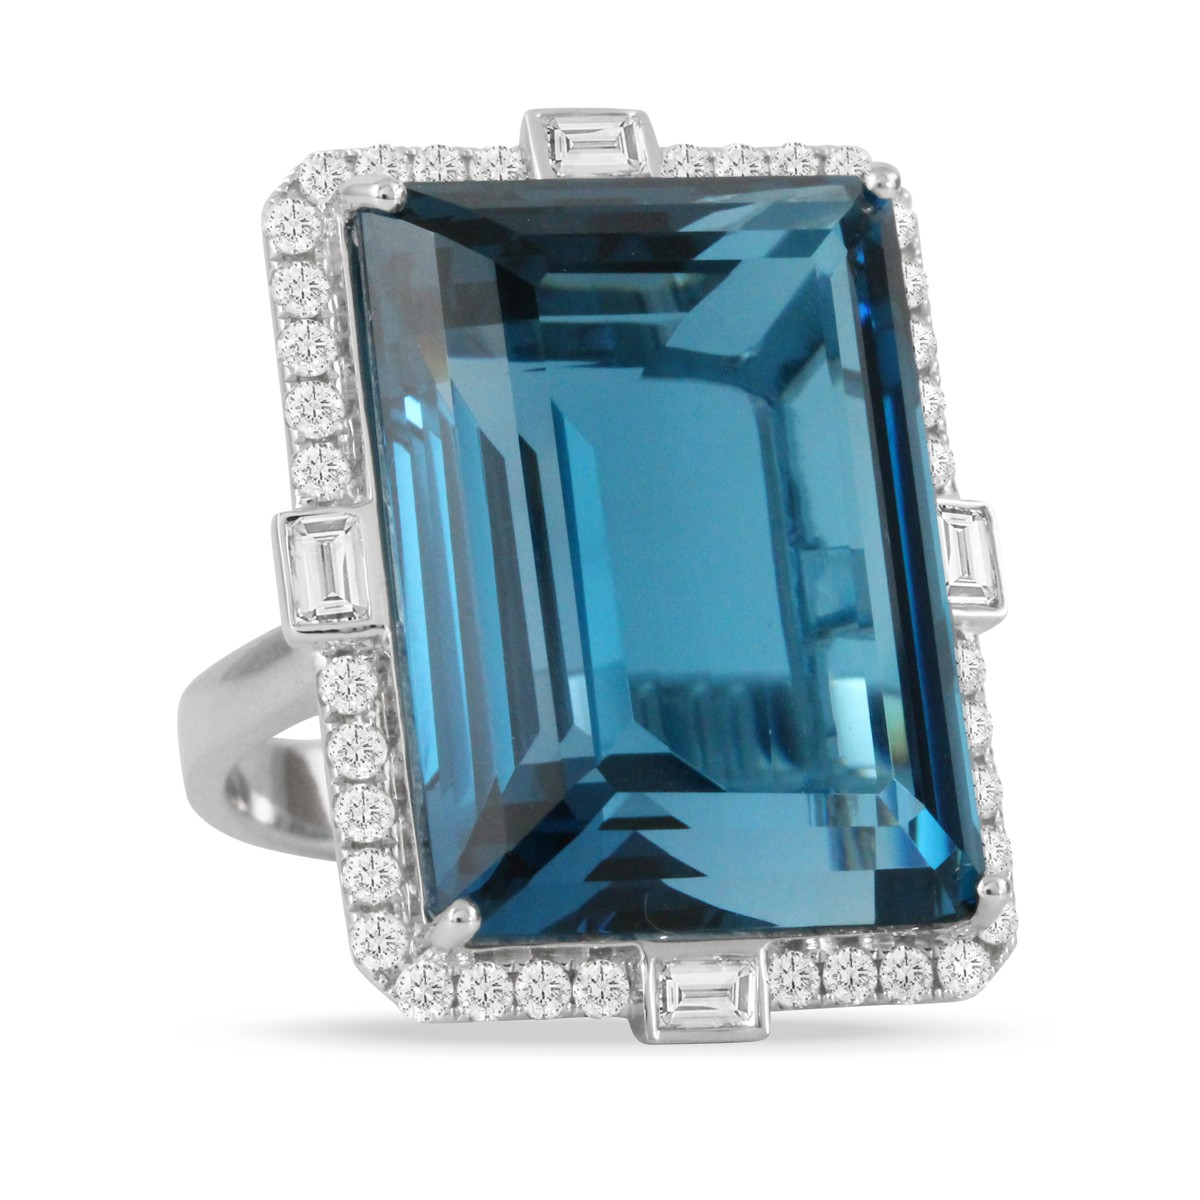 Doves 18KT White Gold 46.32ct London Blue Topaz Ring Surrounded by White Diamonds